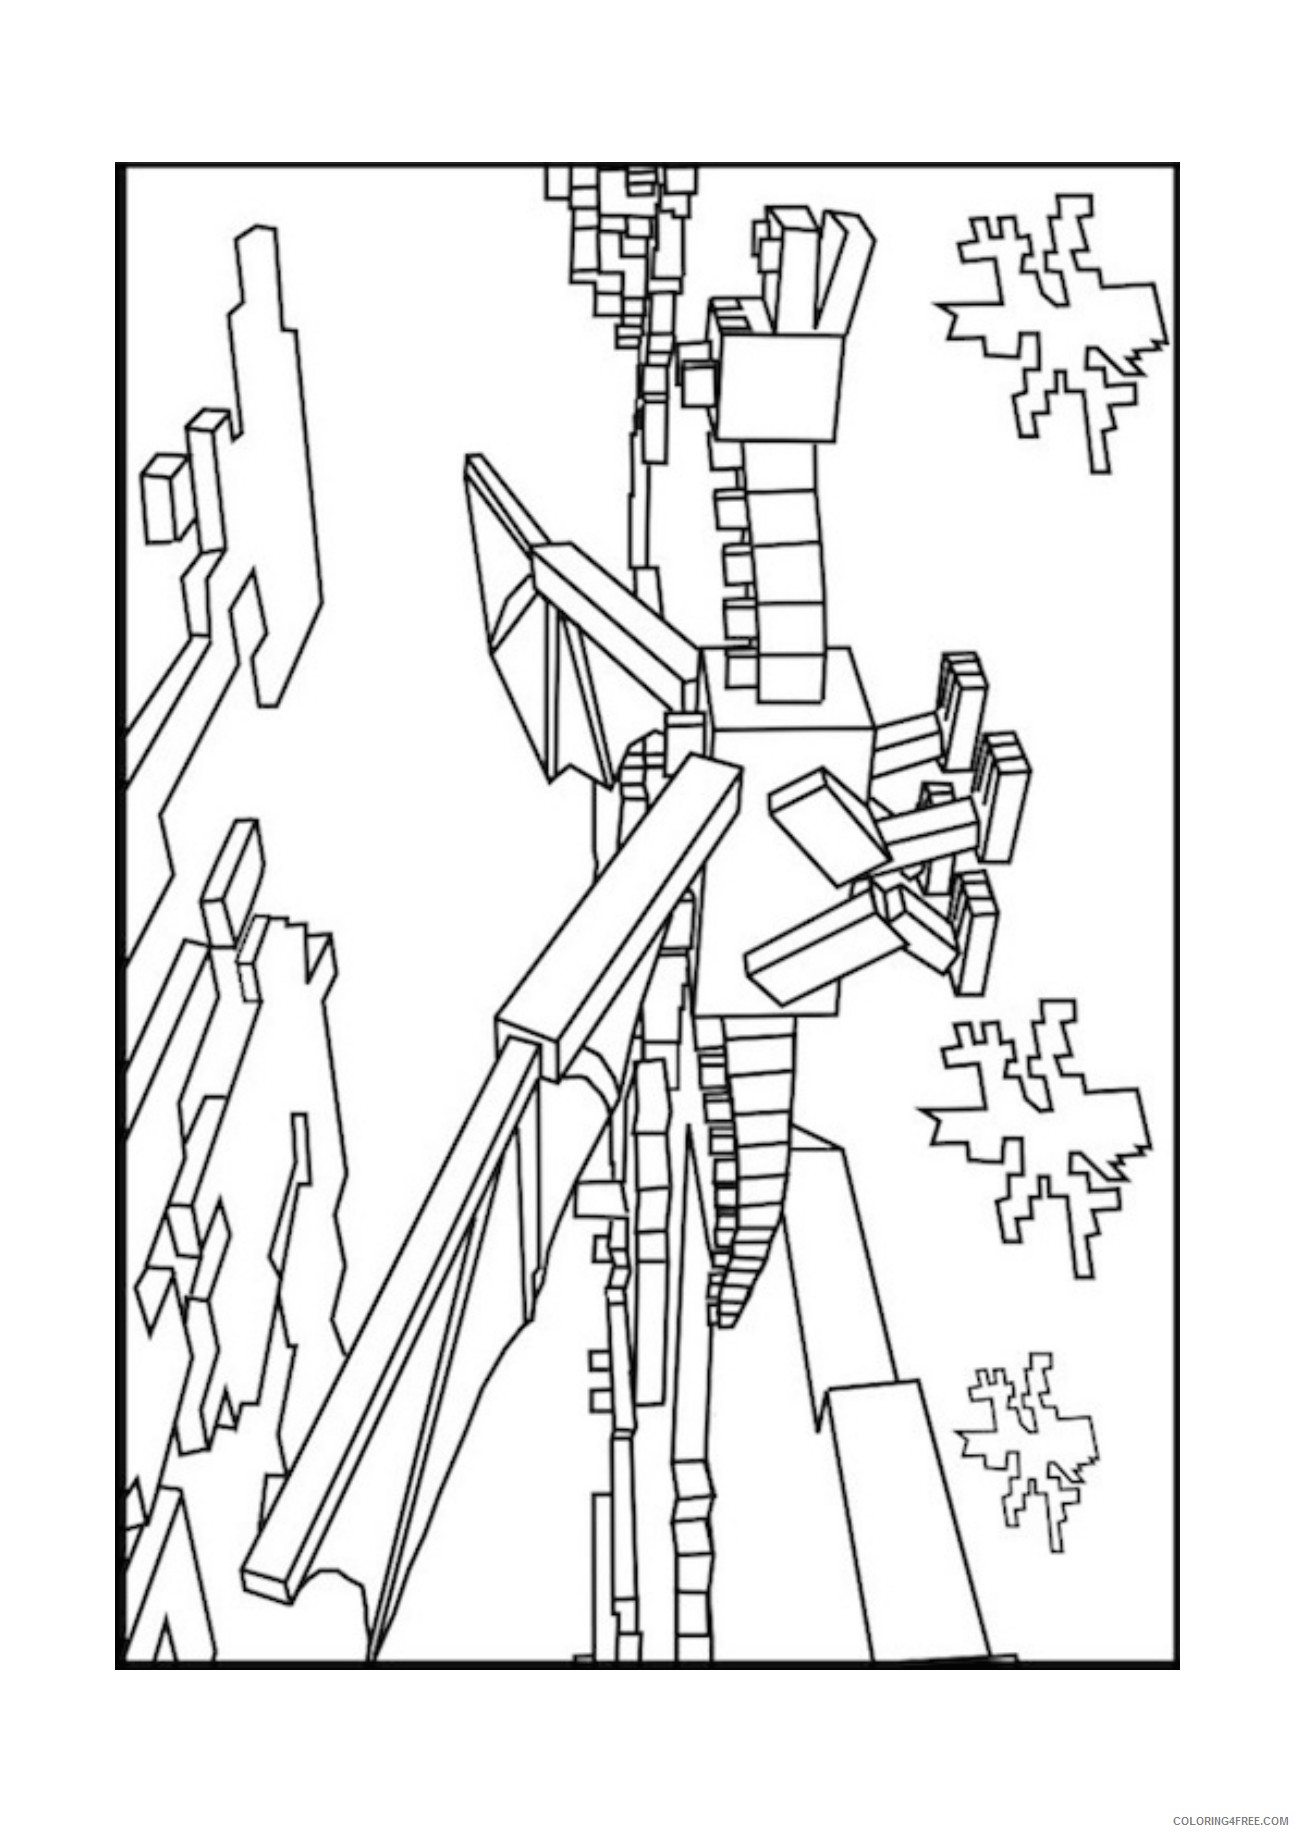 Minecraft Ender Dragon Coloring Pages Coloring4free Coloring4free Com